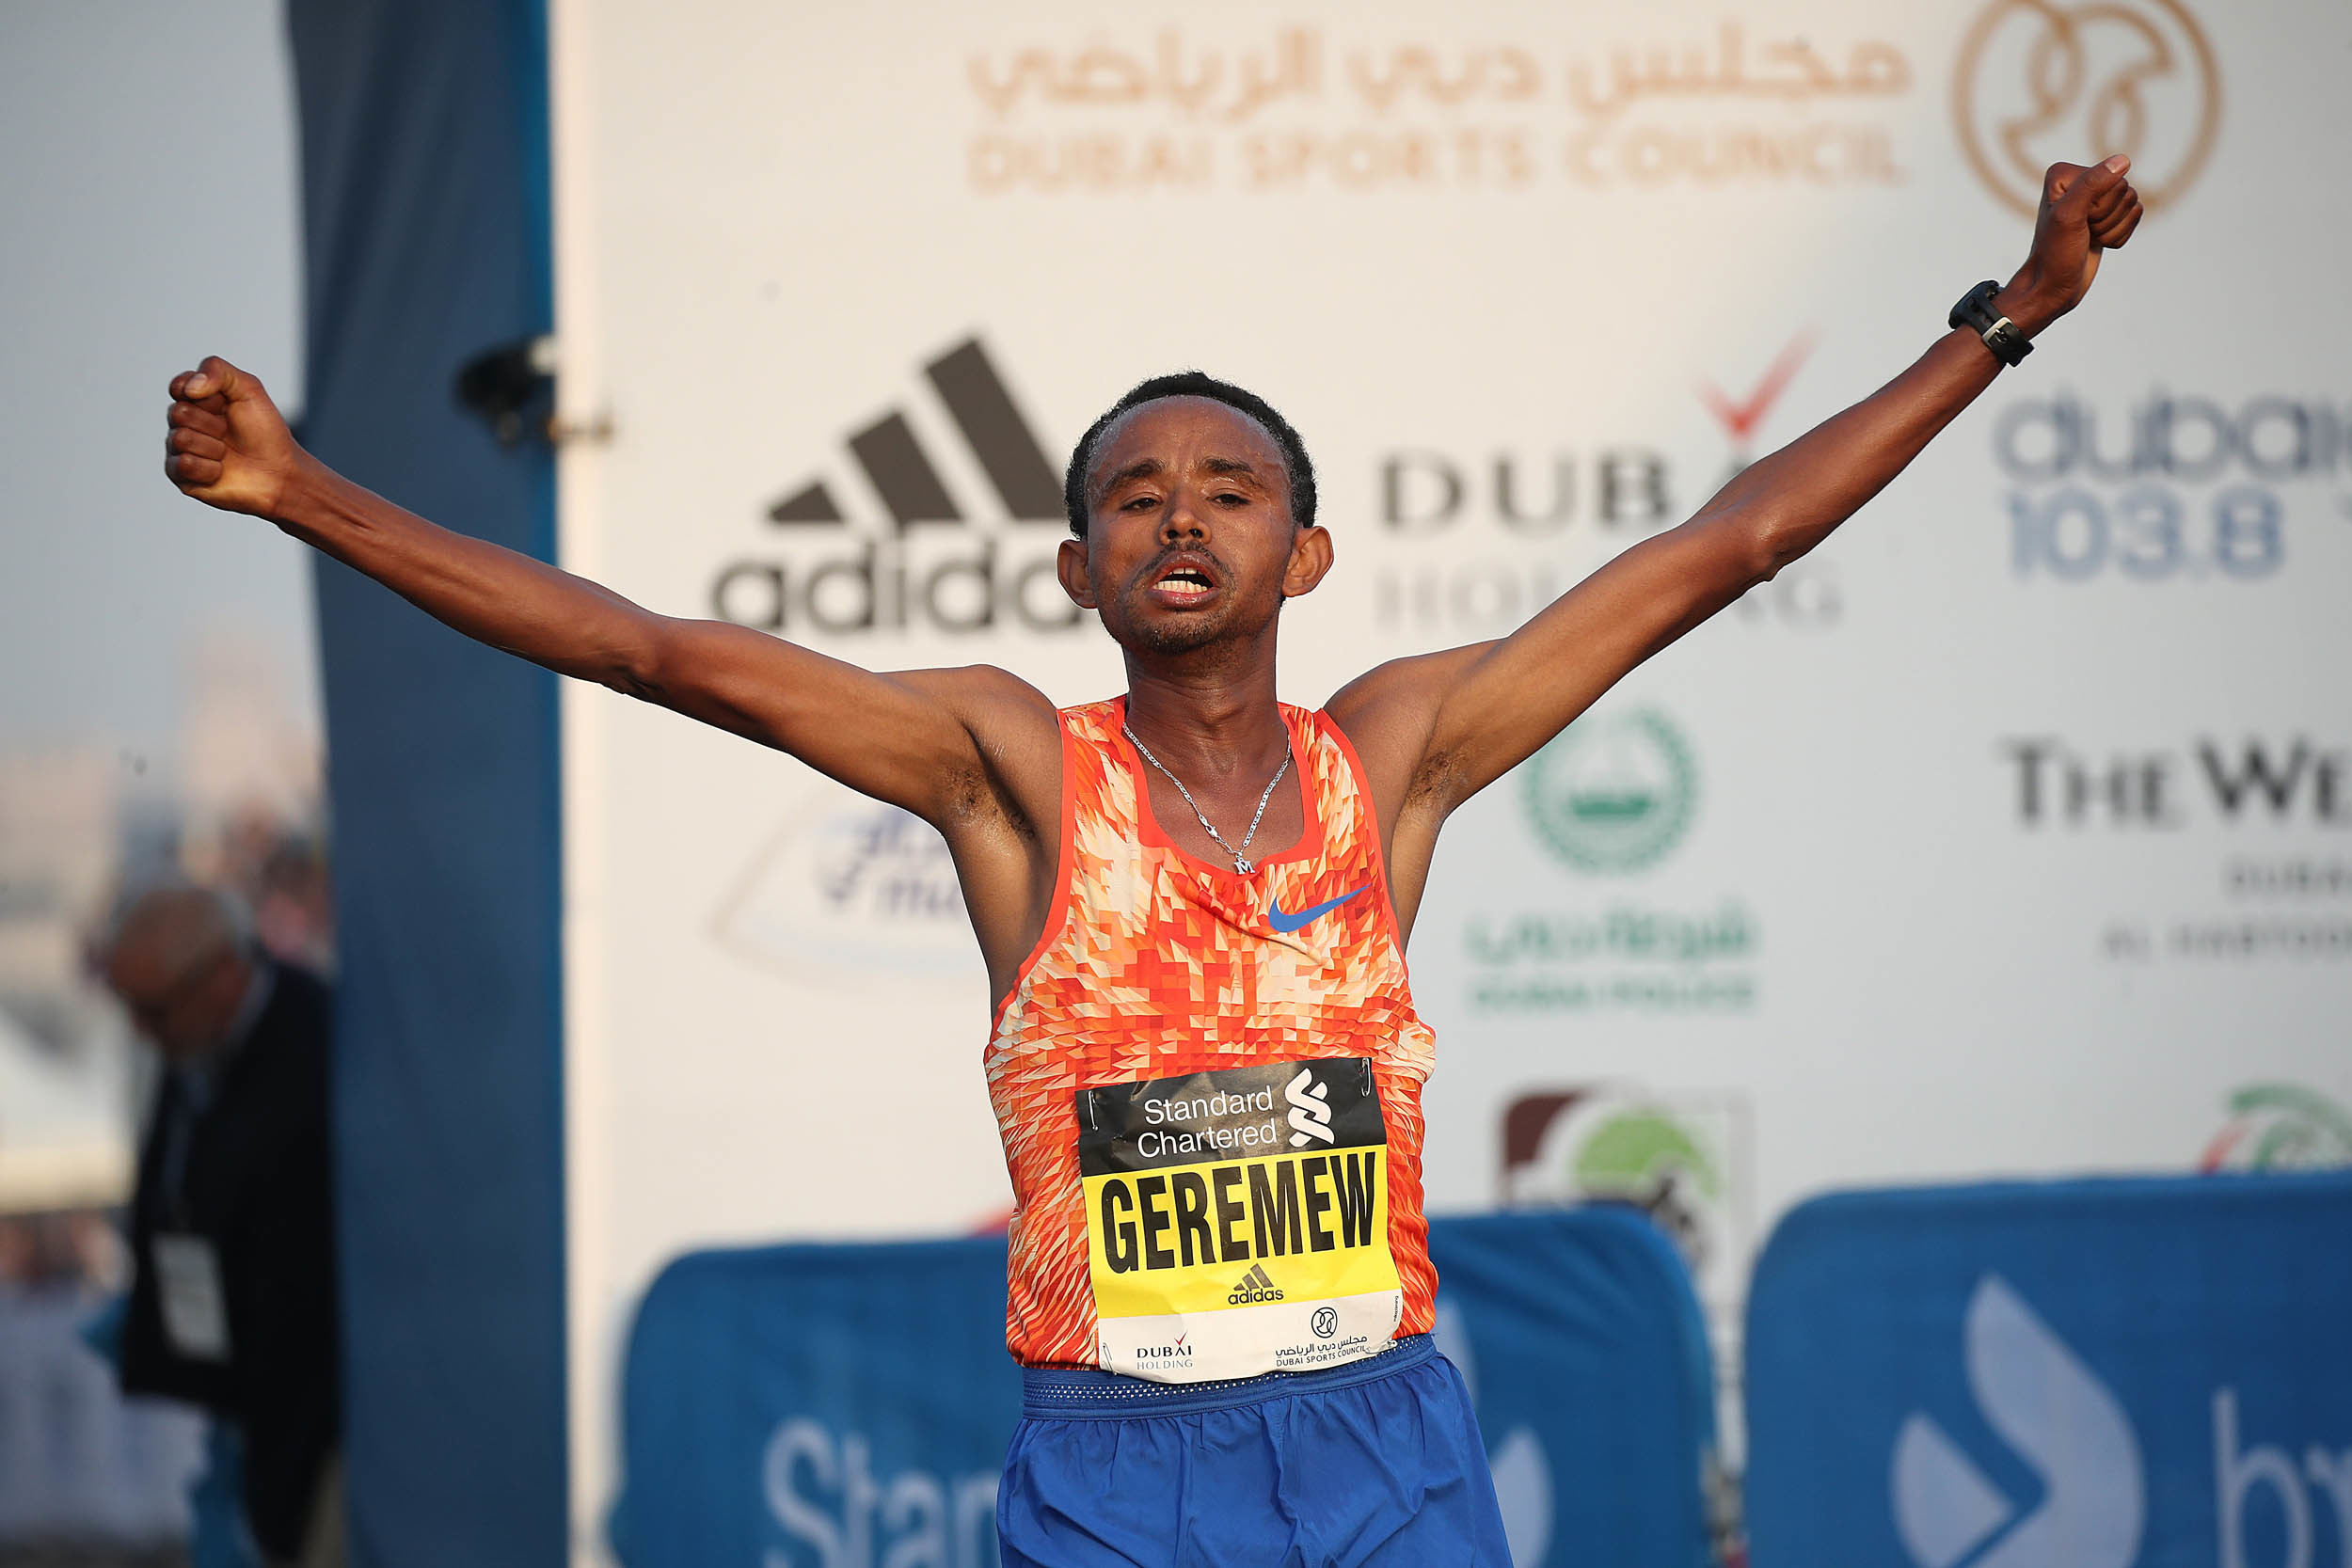 Will Ethiopia's Geremew powerful finishing sprint help him win Yangzhou for third time?